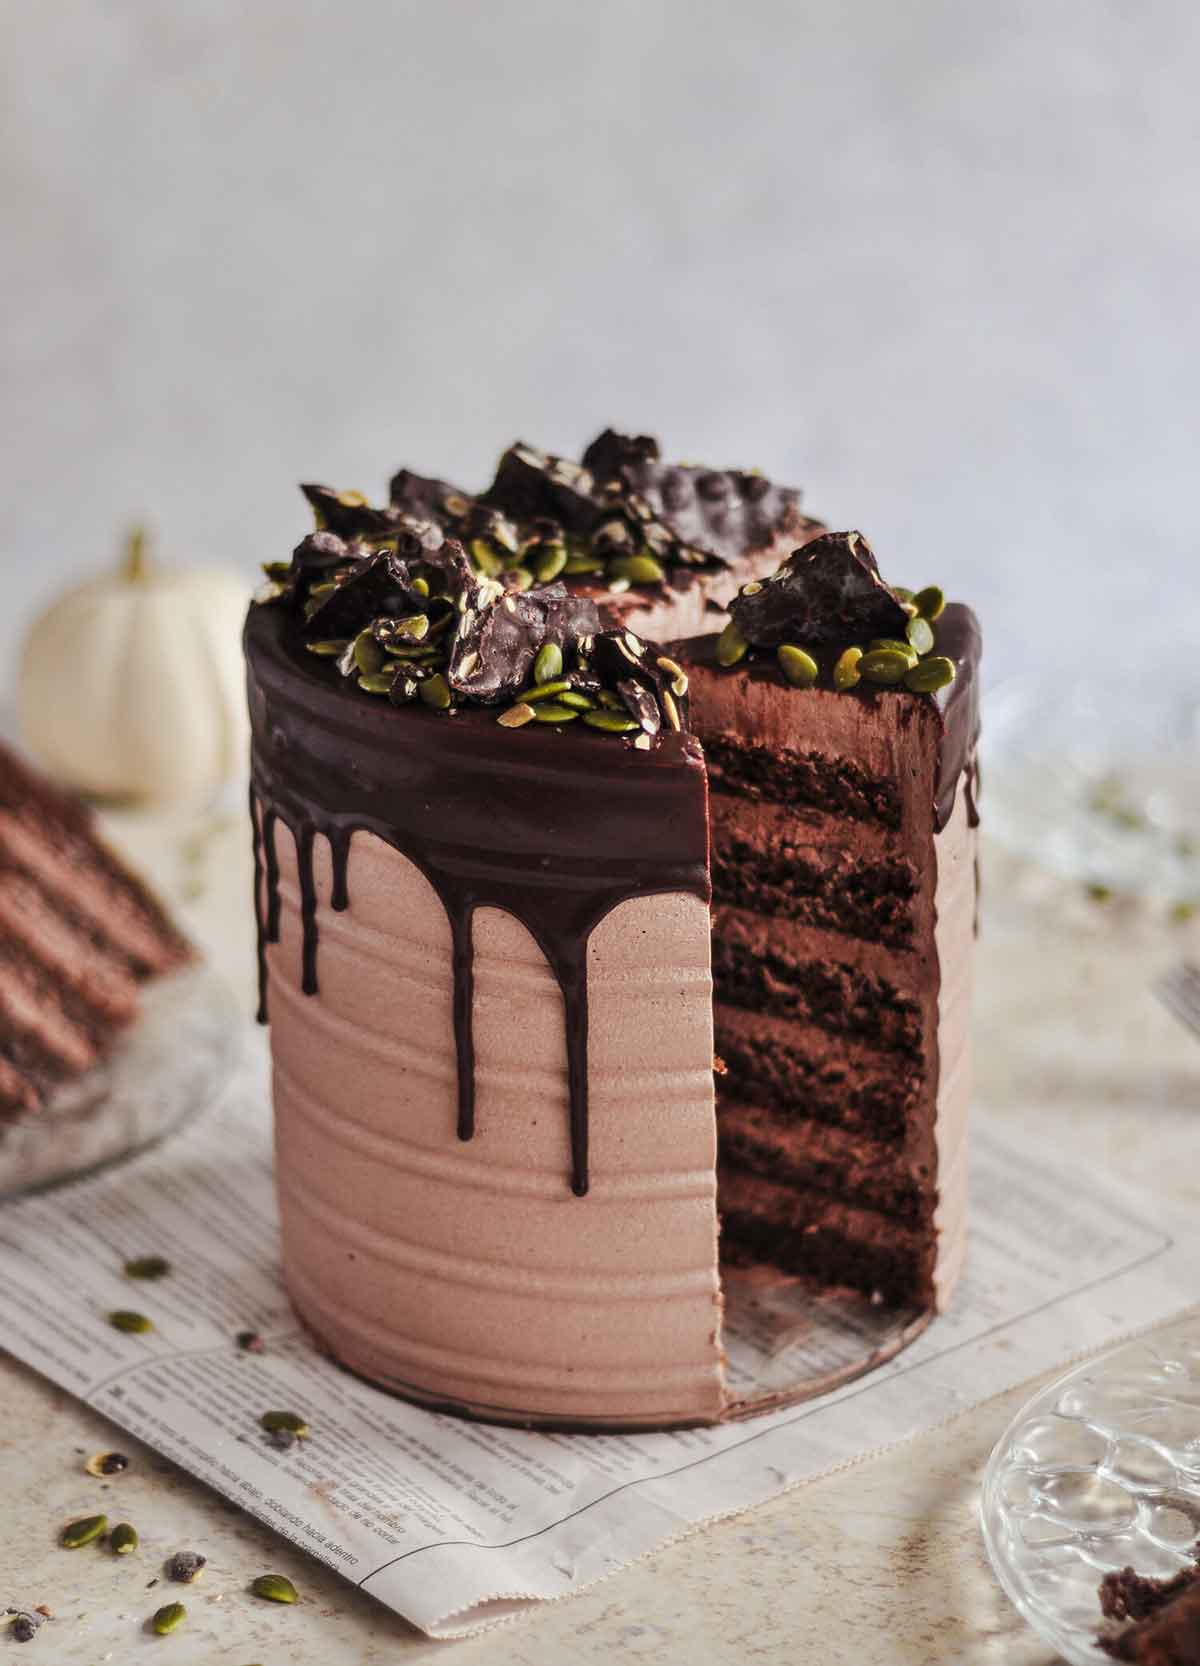 A layered cake, drizzled with chocolate, on a table with a white pumpkin in the background.